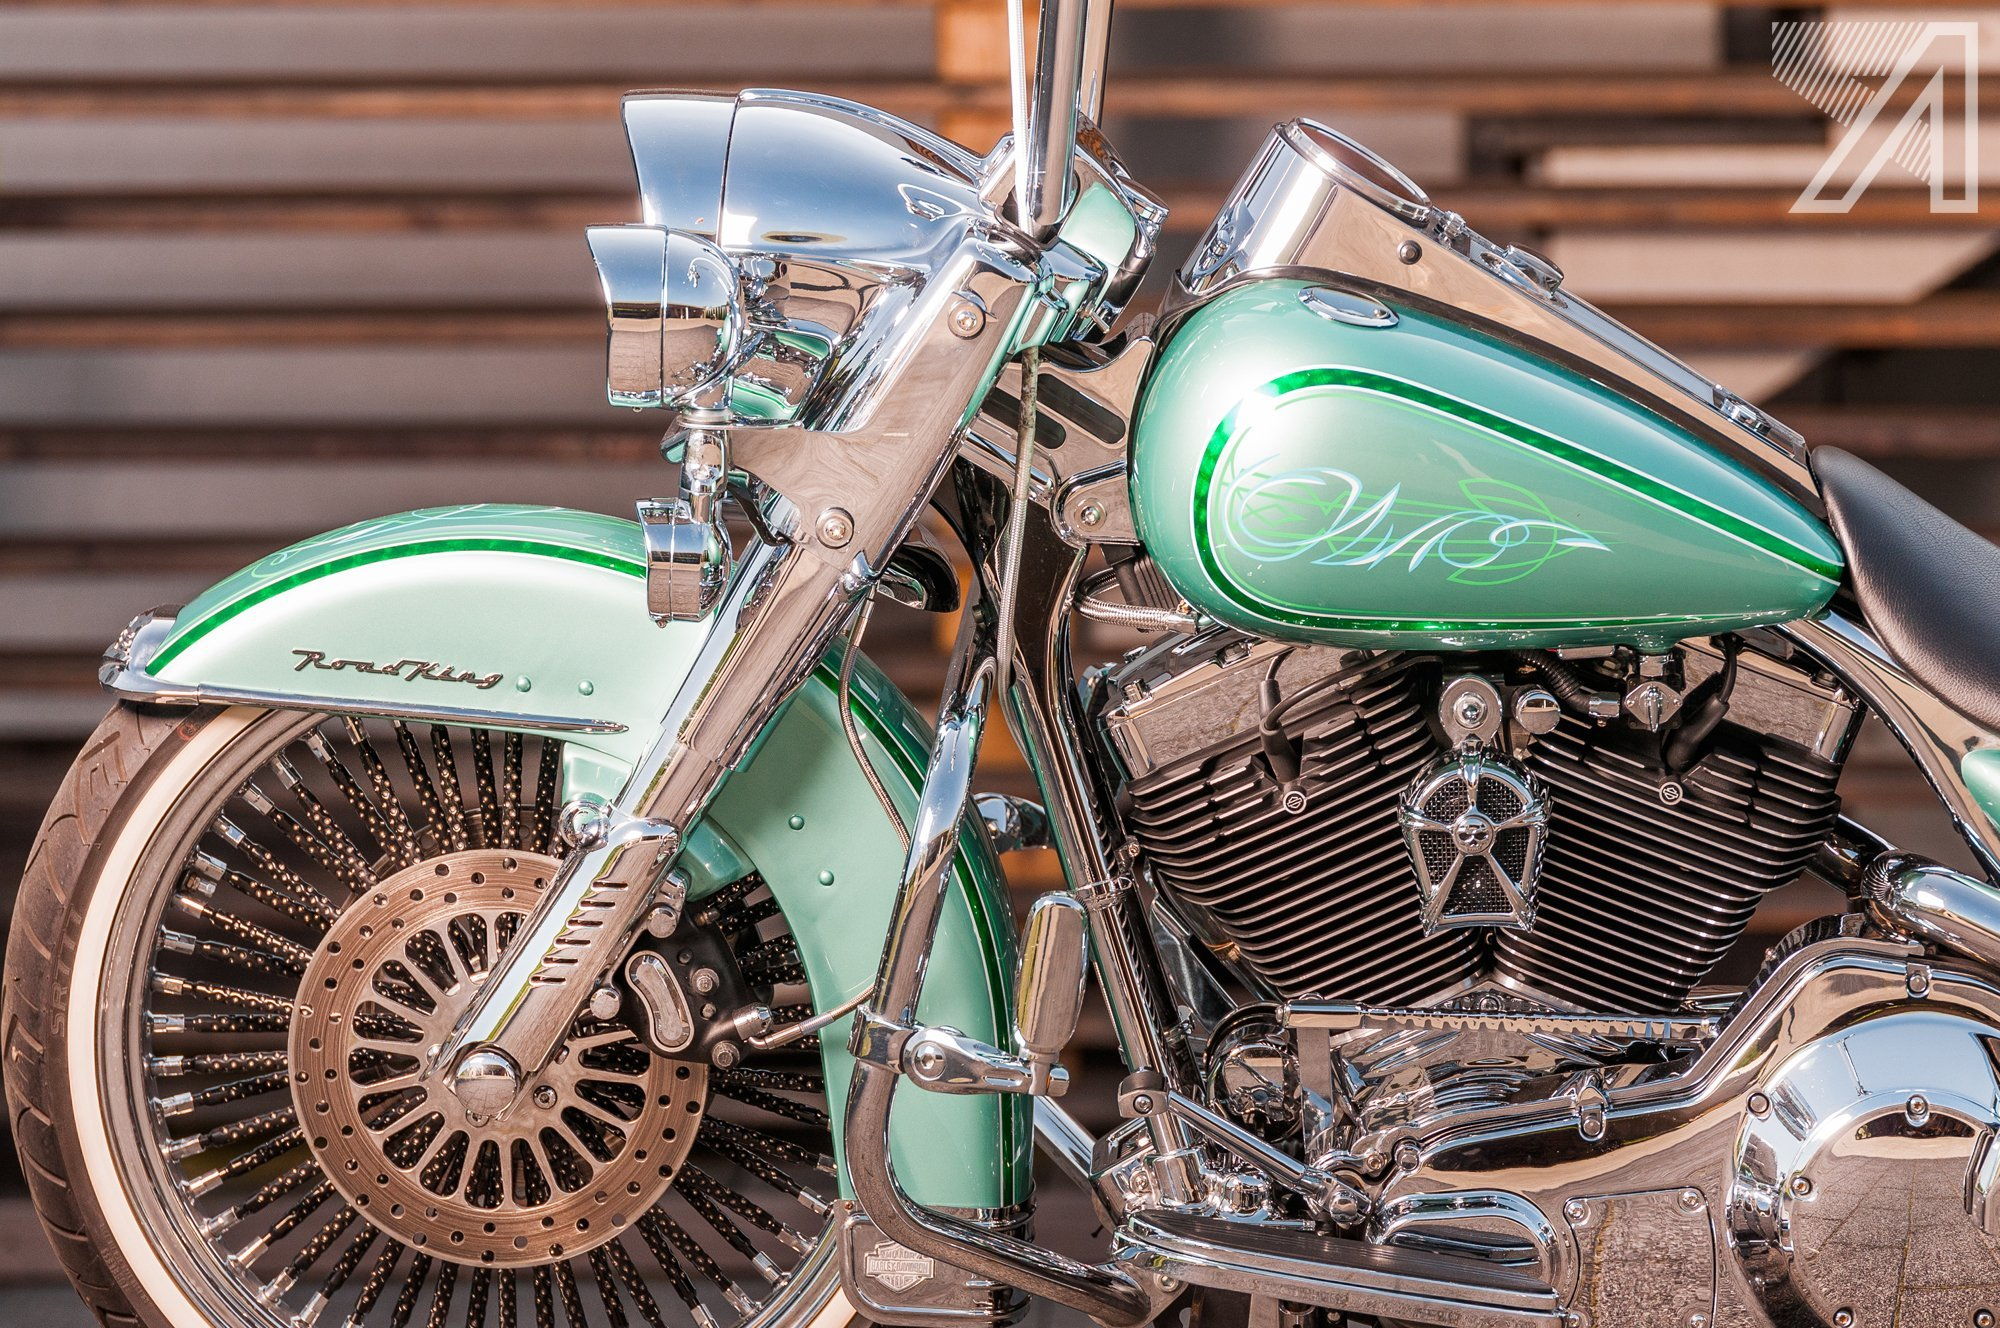 2016-10::1476001599-h-d-road-king-green-candy-leaf-7.jpg